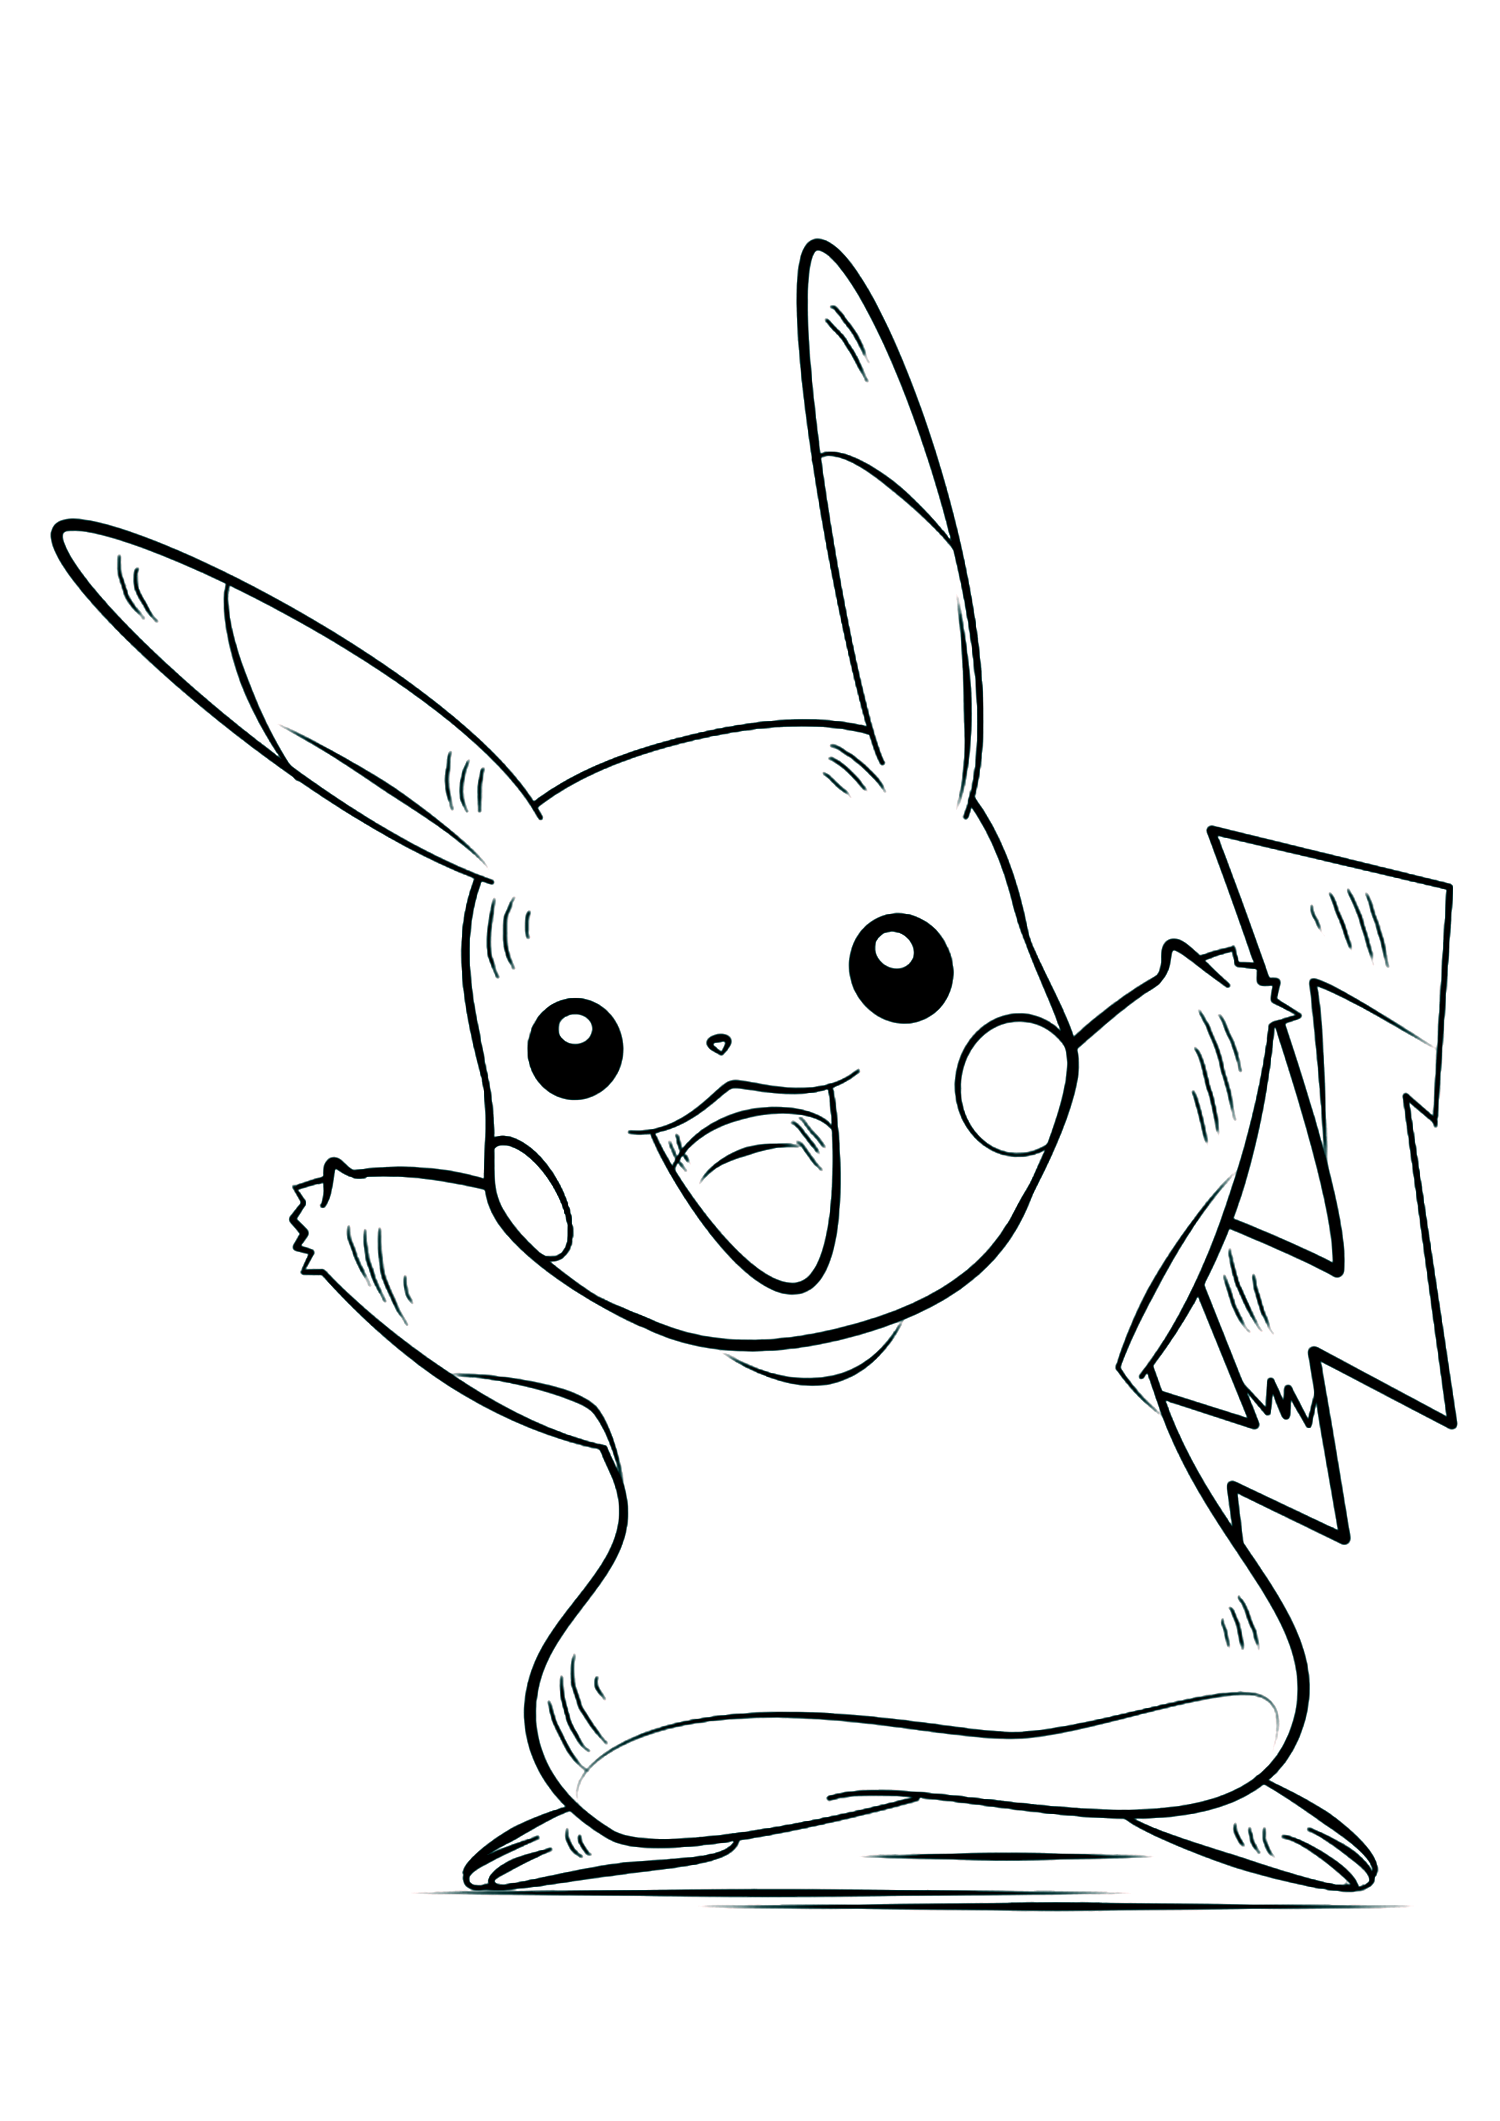 468269 Coloring Pages Of Pokemon Pikachu Wiring Resources